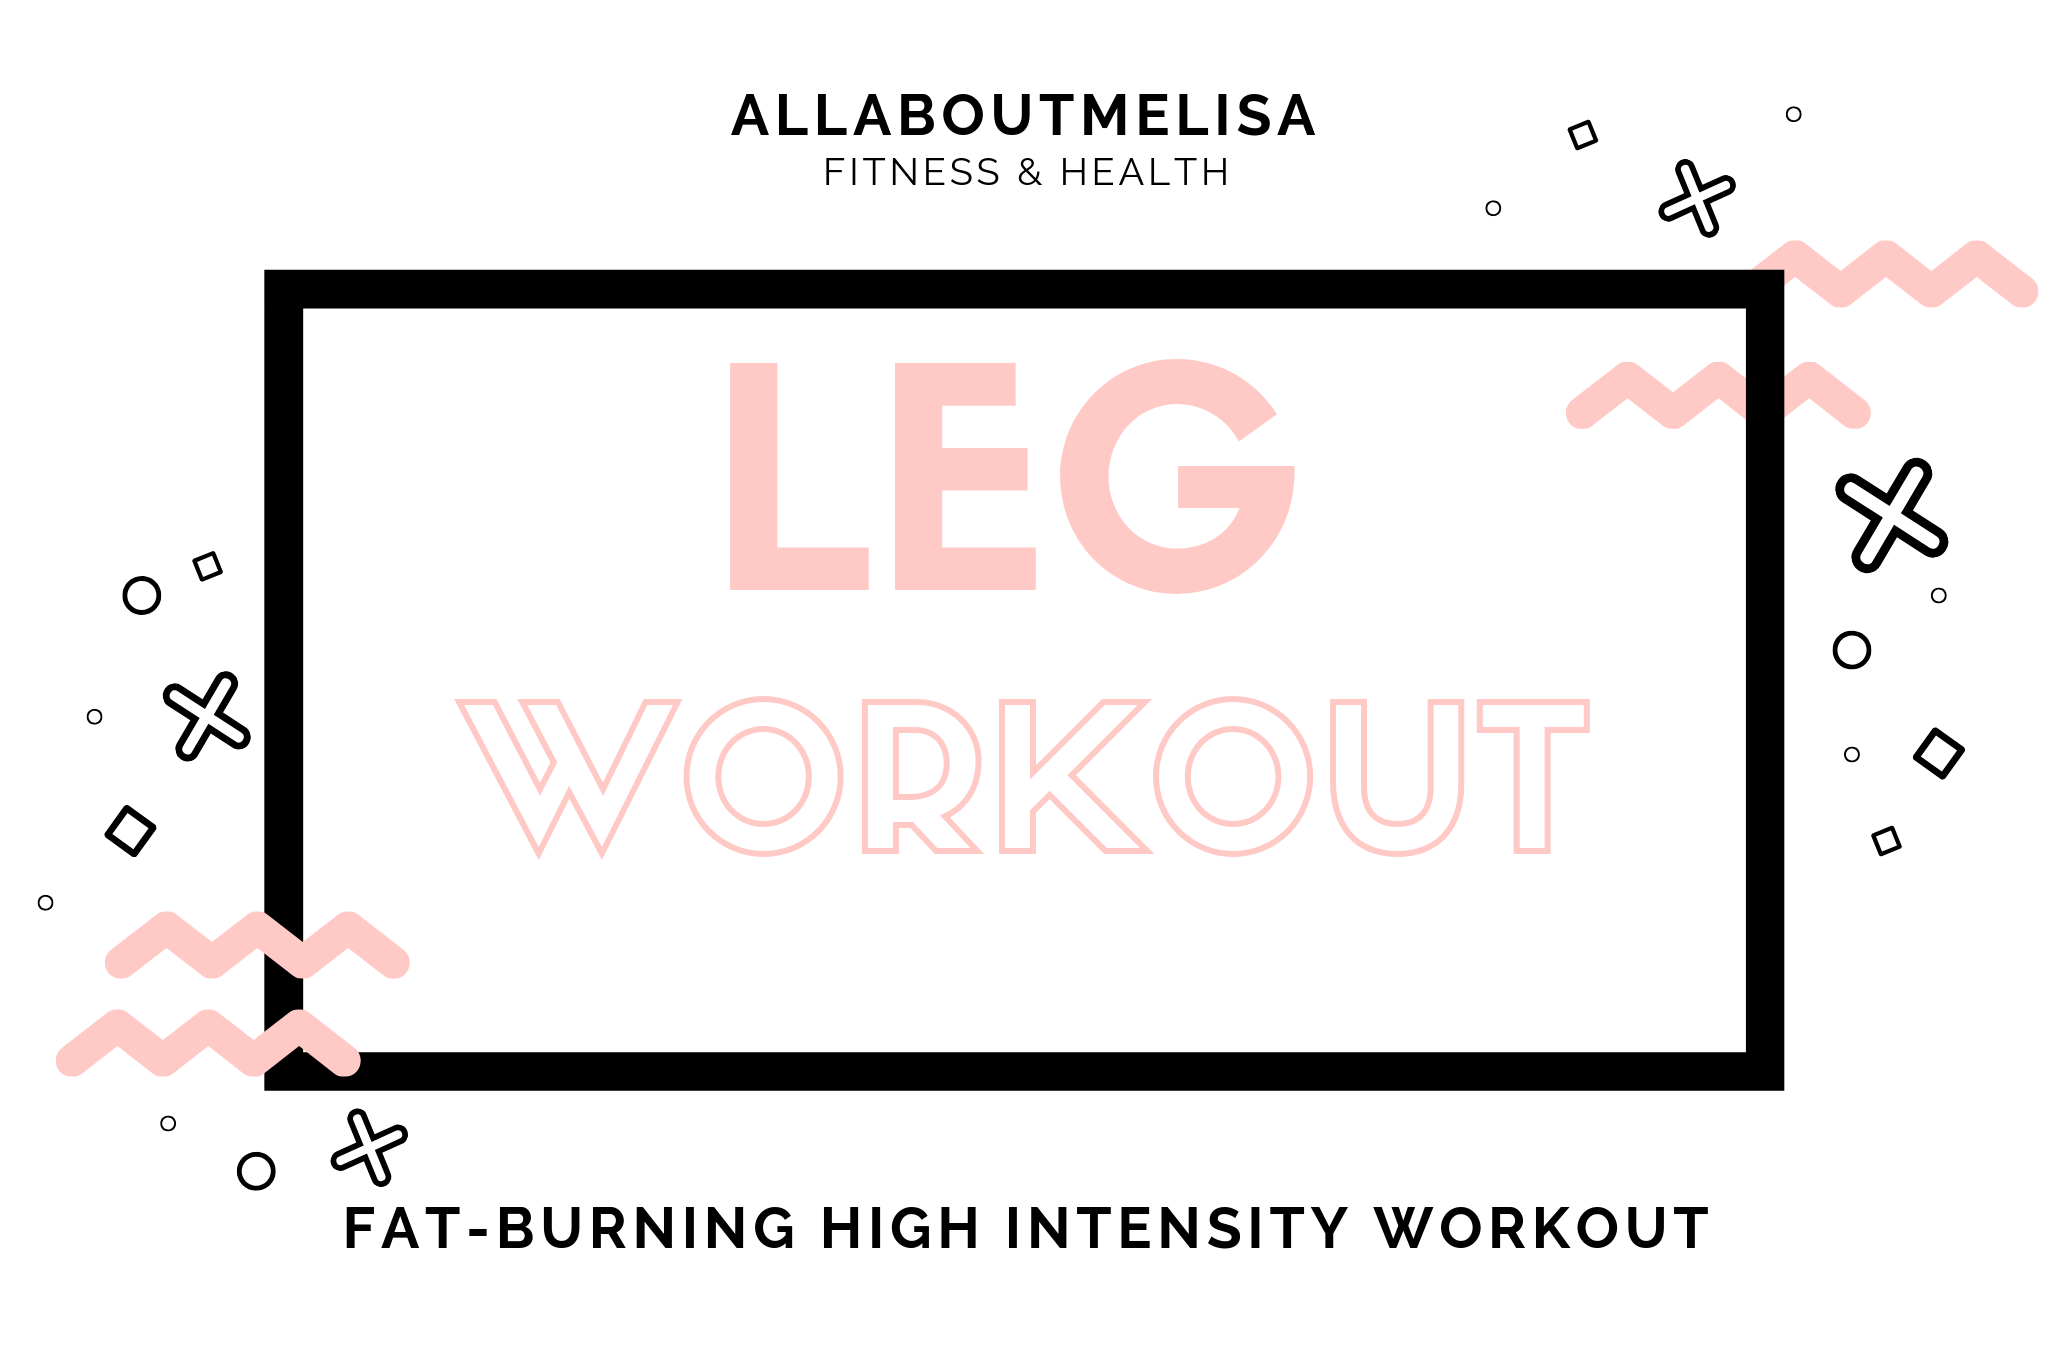 hiit high intensity leg workout leg focused cardio circle fitness